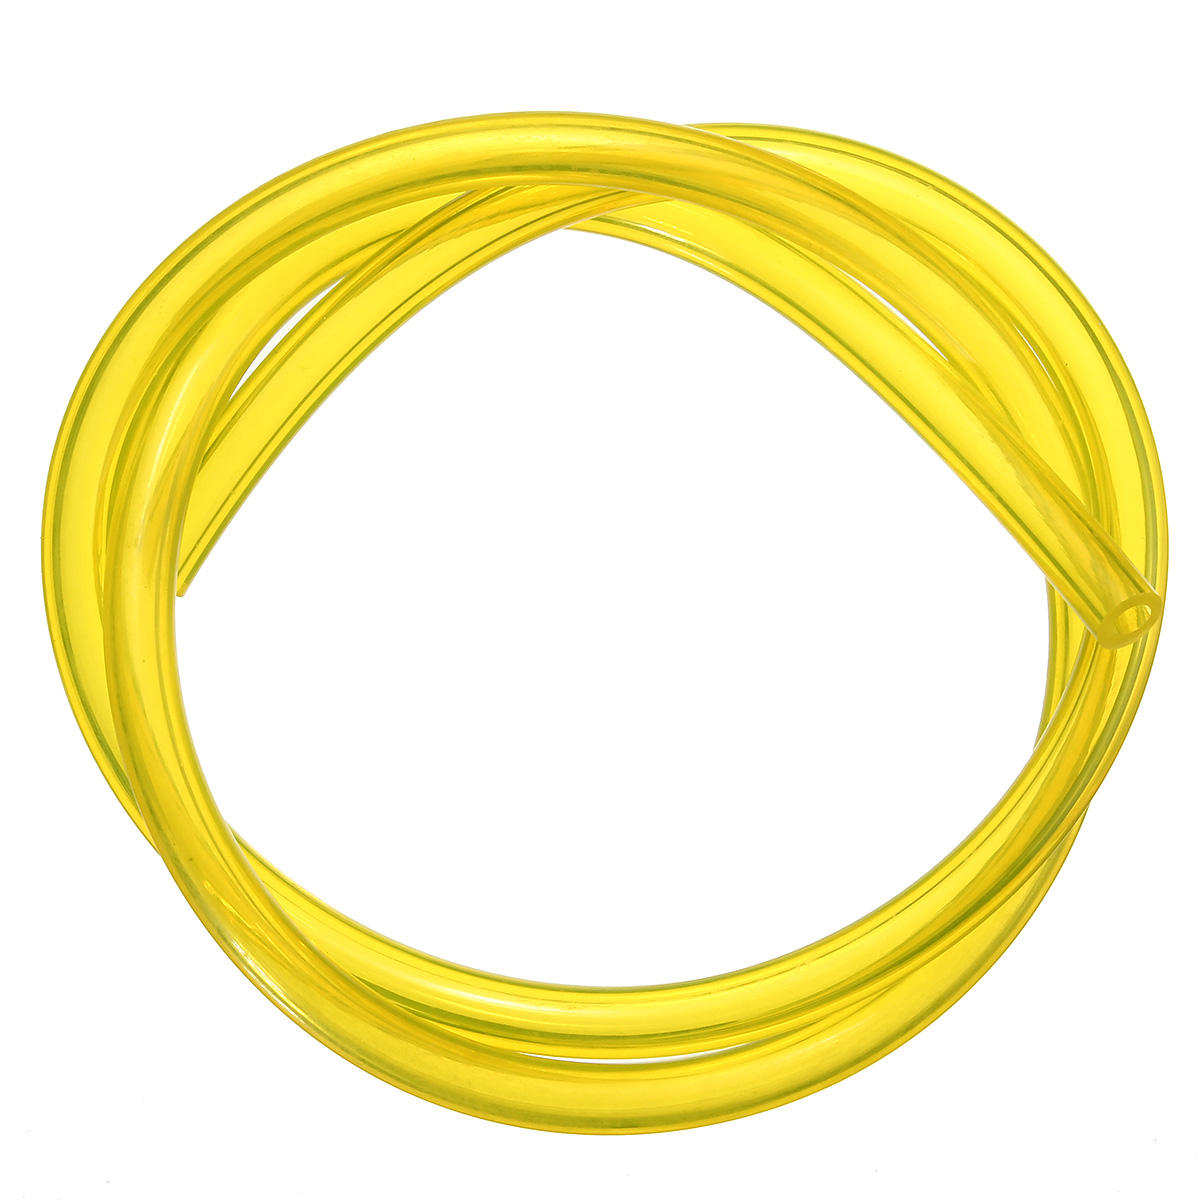 hight resolution of 3x6mm hose fuel filter hose for mower motorcycle scooter brushcutter sell fuel gas line pipe hose trimmer chainsaw blower cod